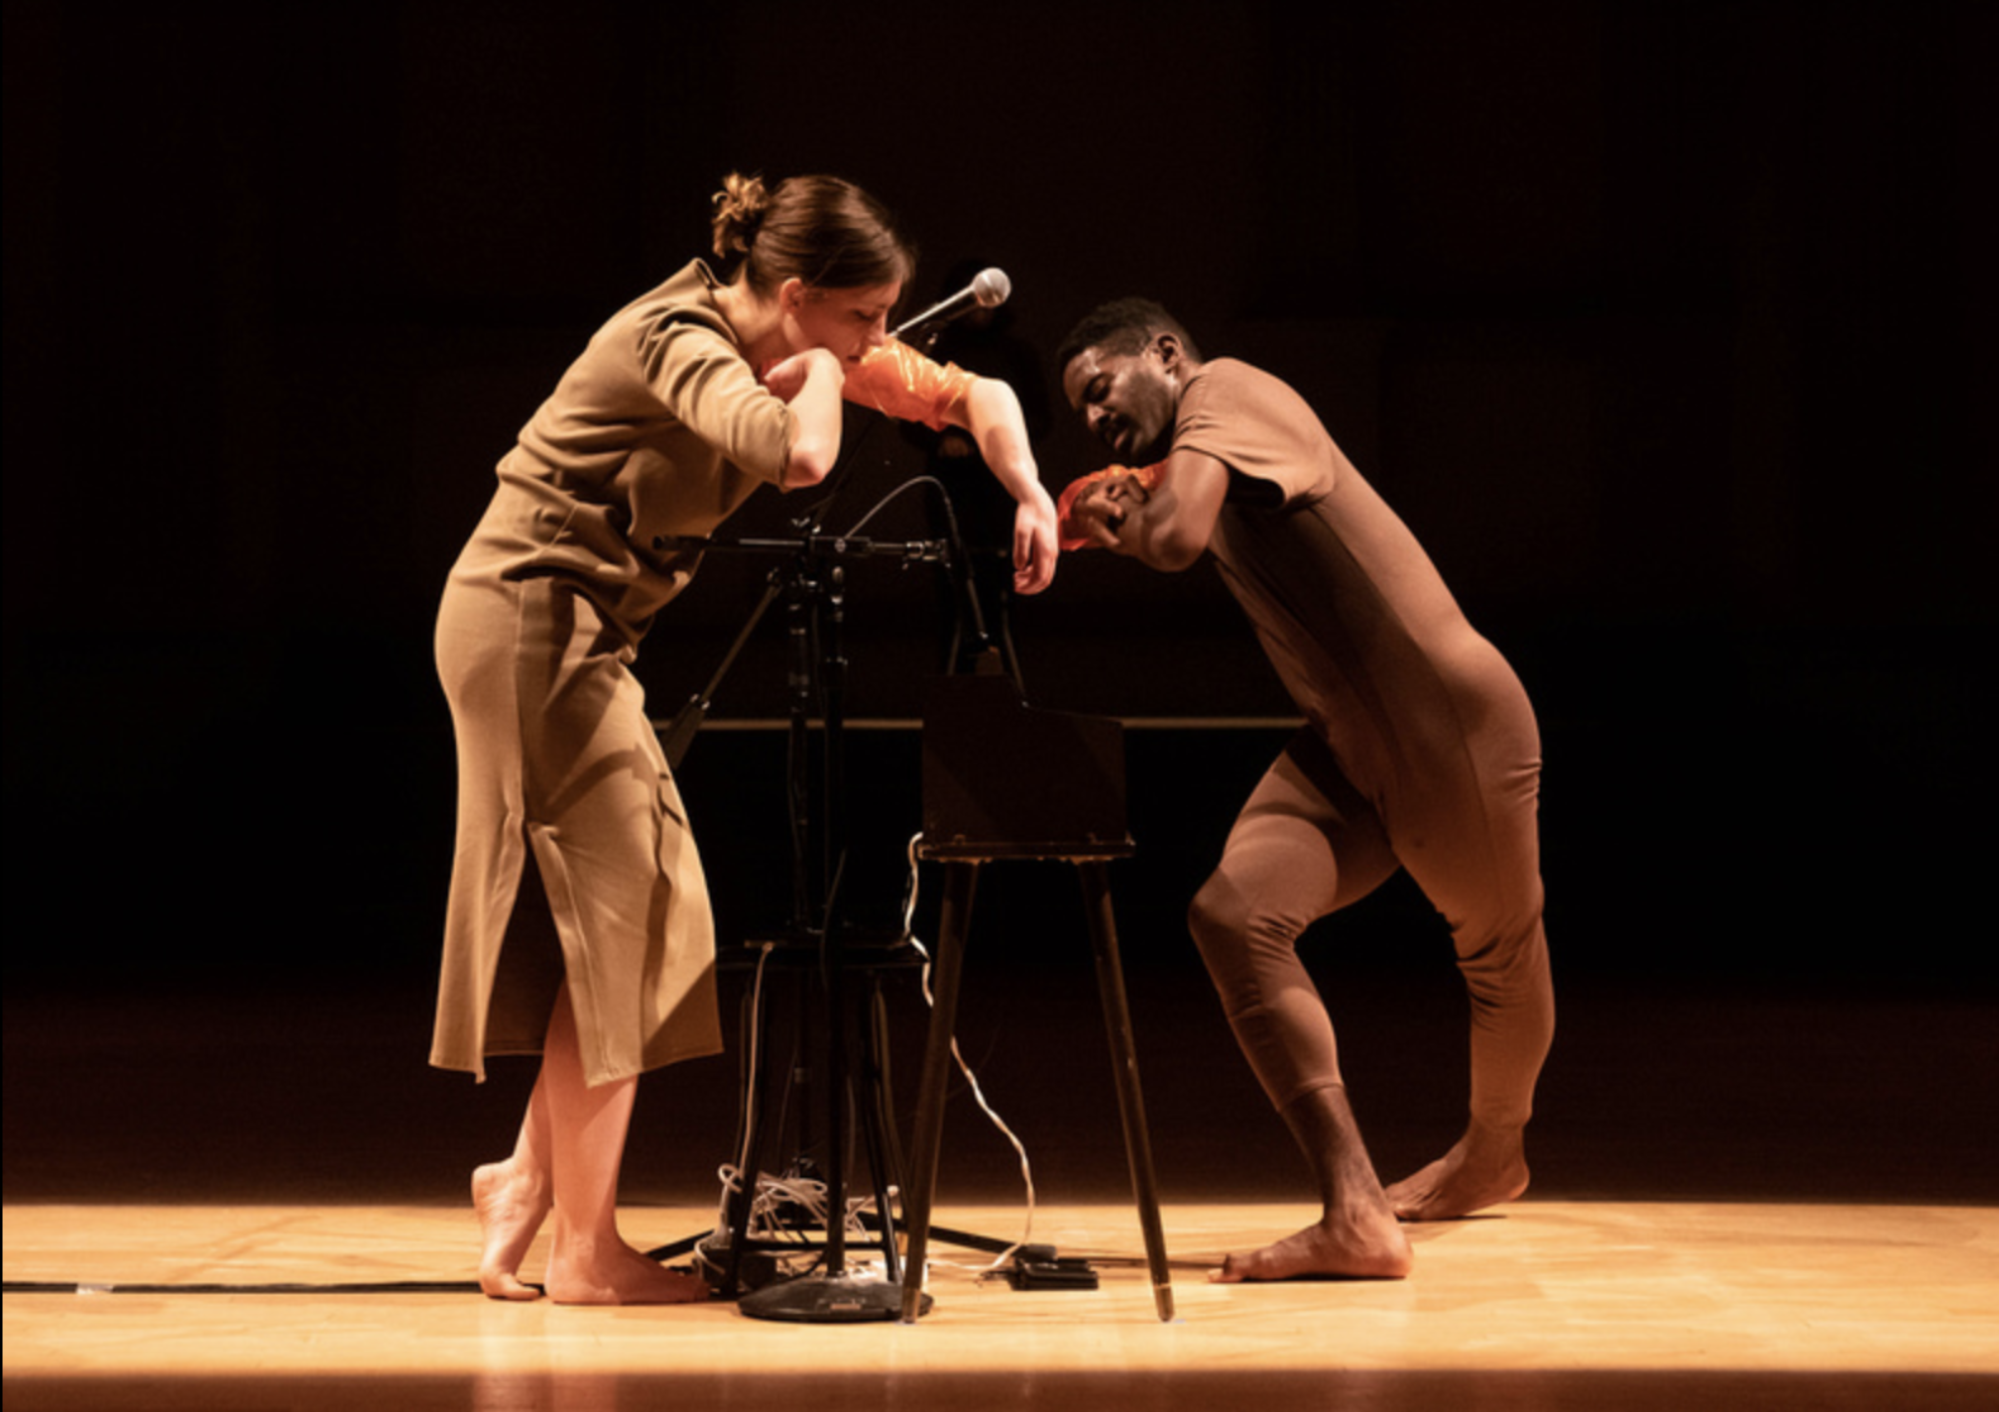 Jerron Herman and Molly performing on a brown vintage toy organ. Jerron is a Black man wearing a brown dance costume. Molly is a white woman wearing a tan dress costume with her hands reaching out to the organ, and microphone equipment in between.